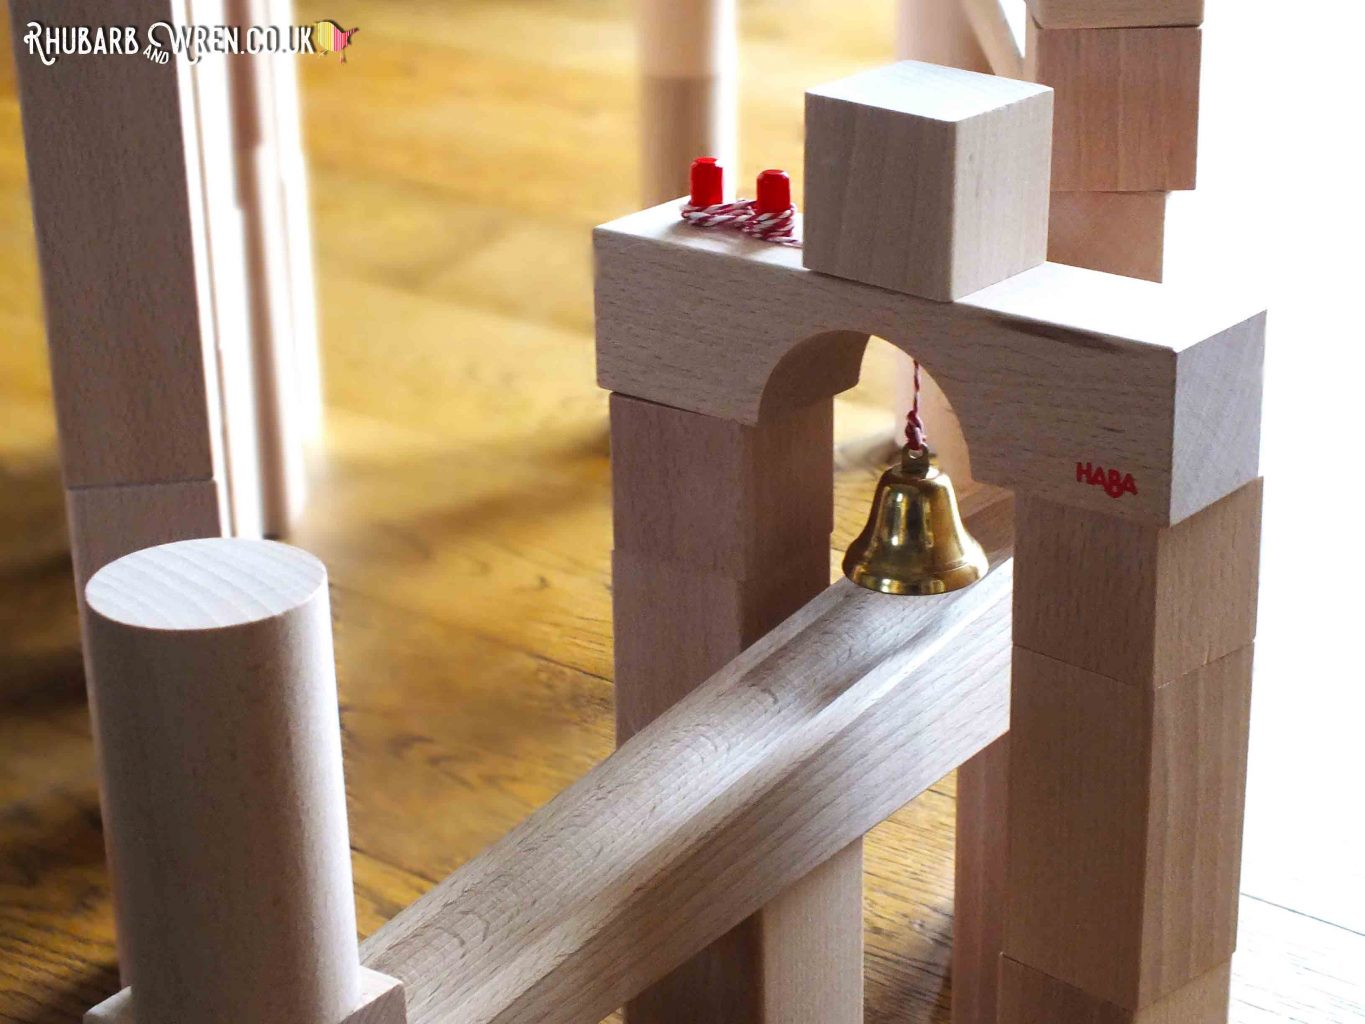 Small brass bell dangling from bridge section over HABA wooden marble run track